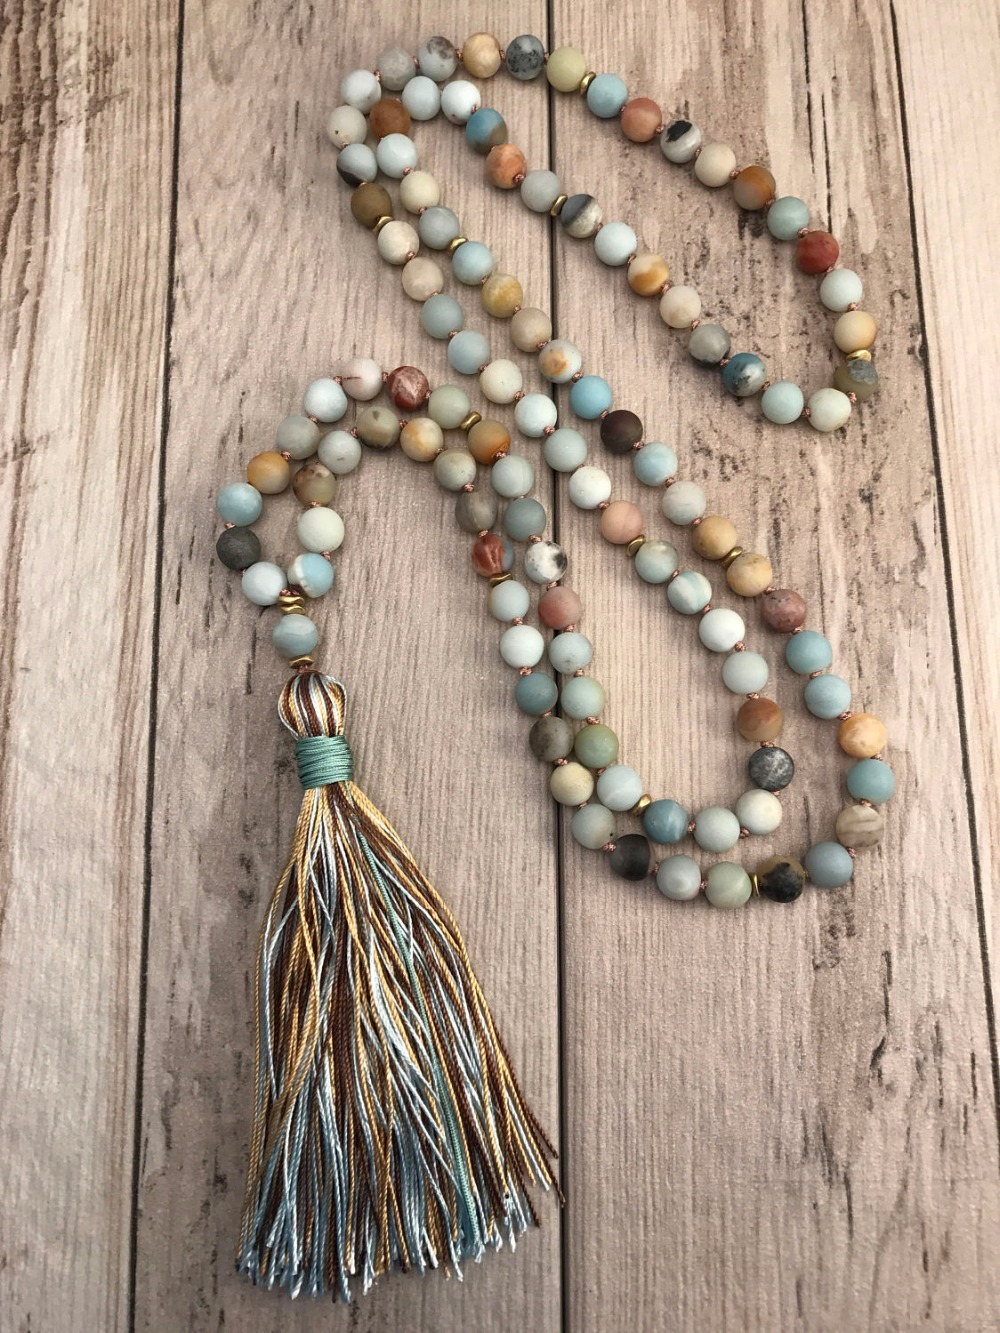 Bead Necklace Mala Jewelry Tassel Amazonite Hand-Knotted Meditation Silk Matte Yoga 108